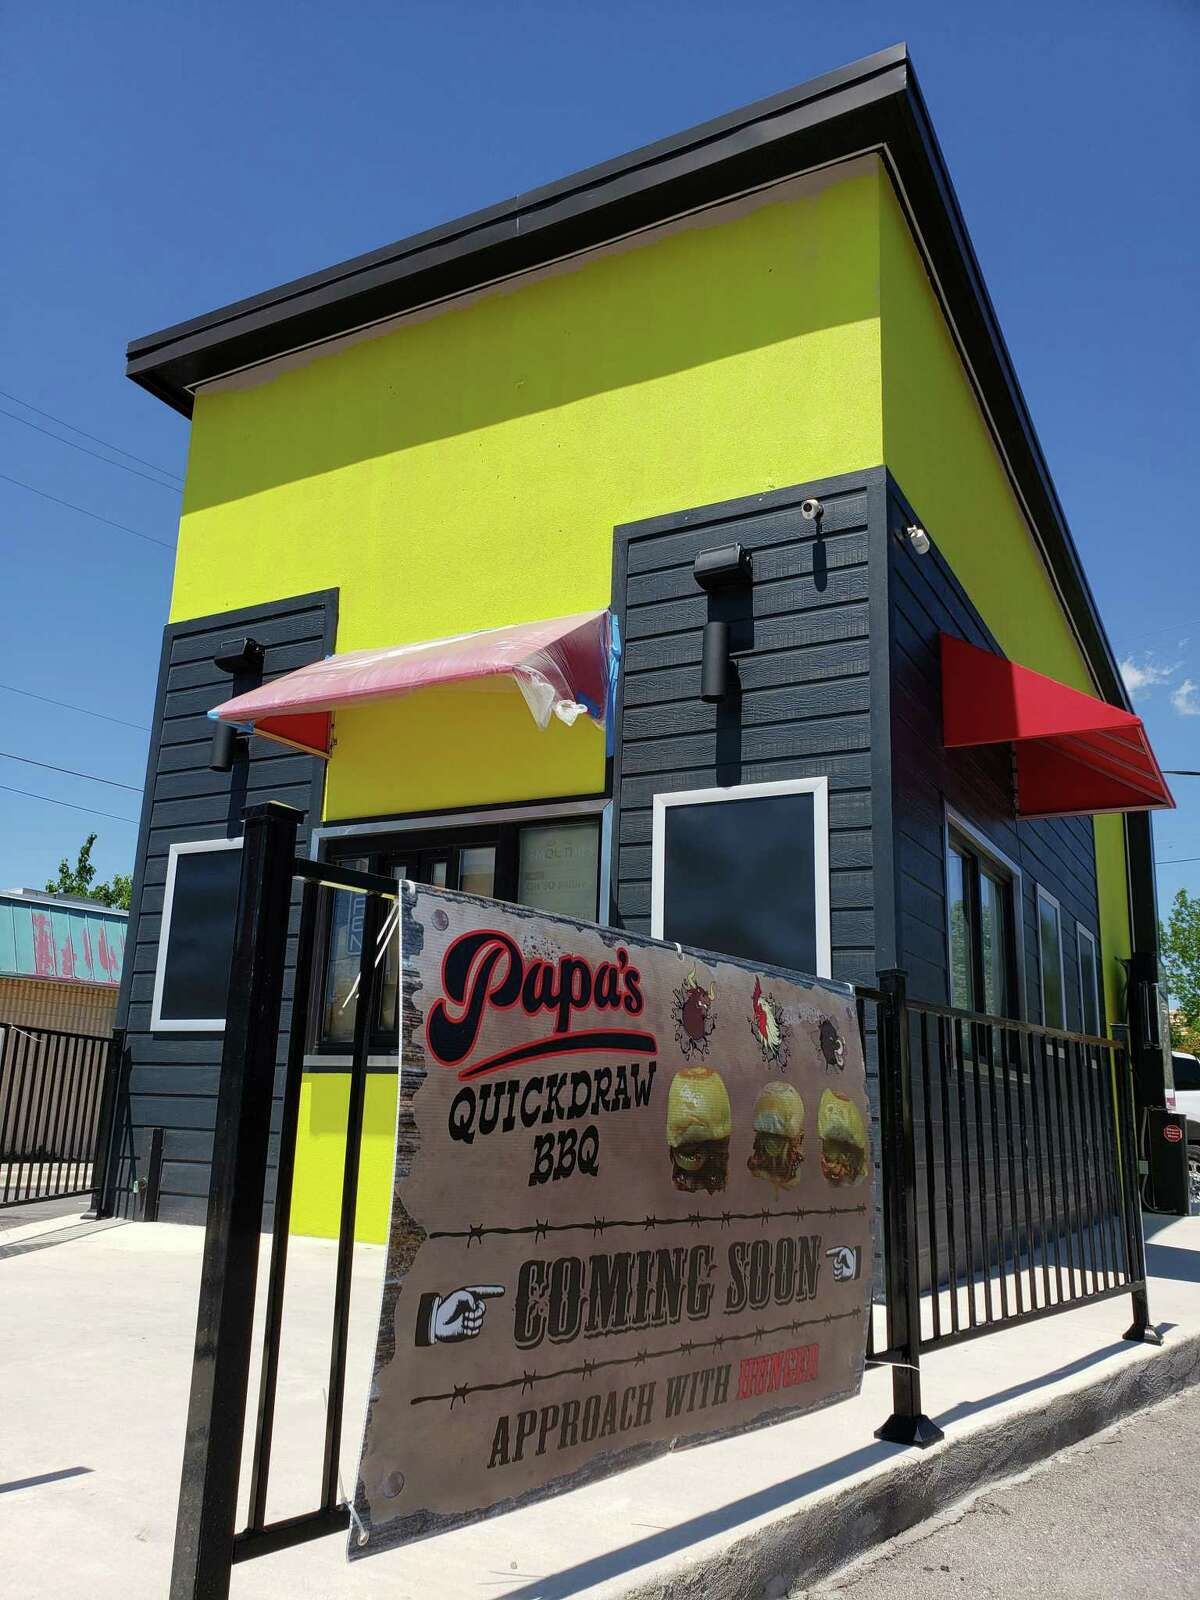 Papa's Quickdraw BBQ is located at 12054 Blanco Road and is expected to open June 18.